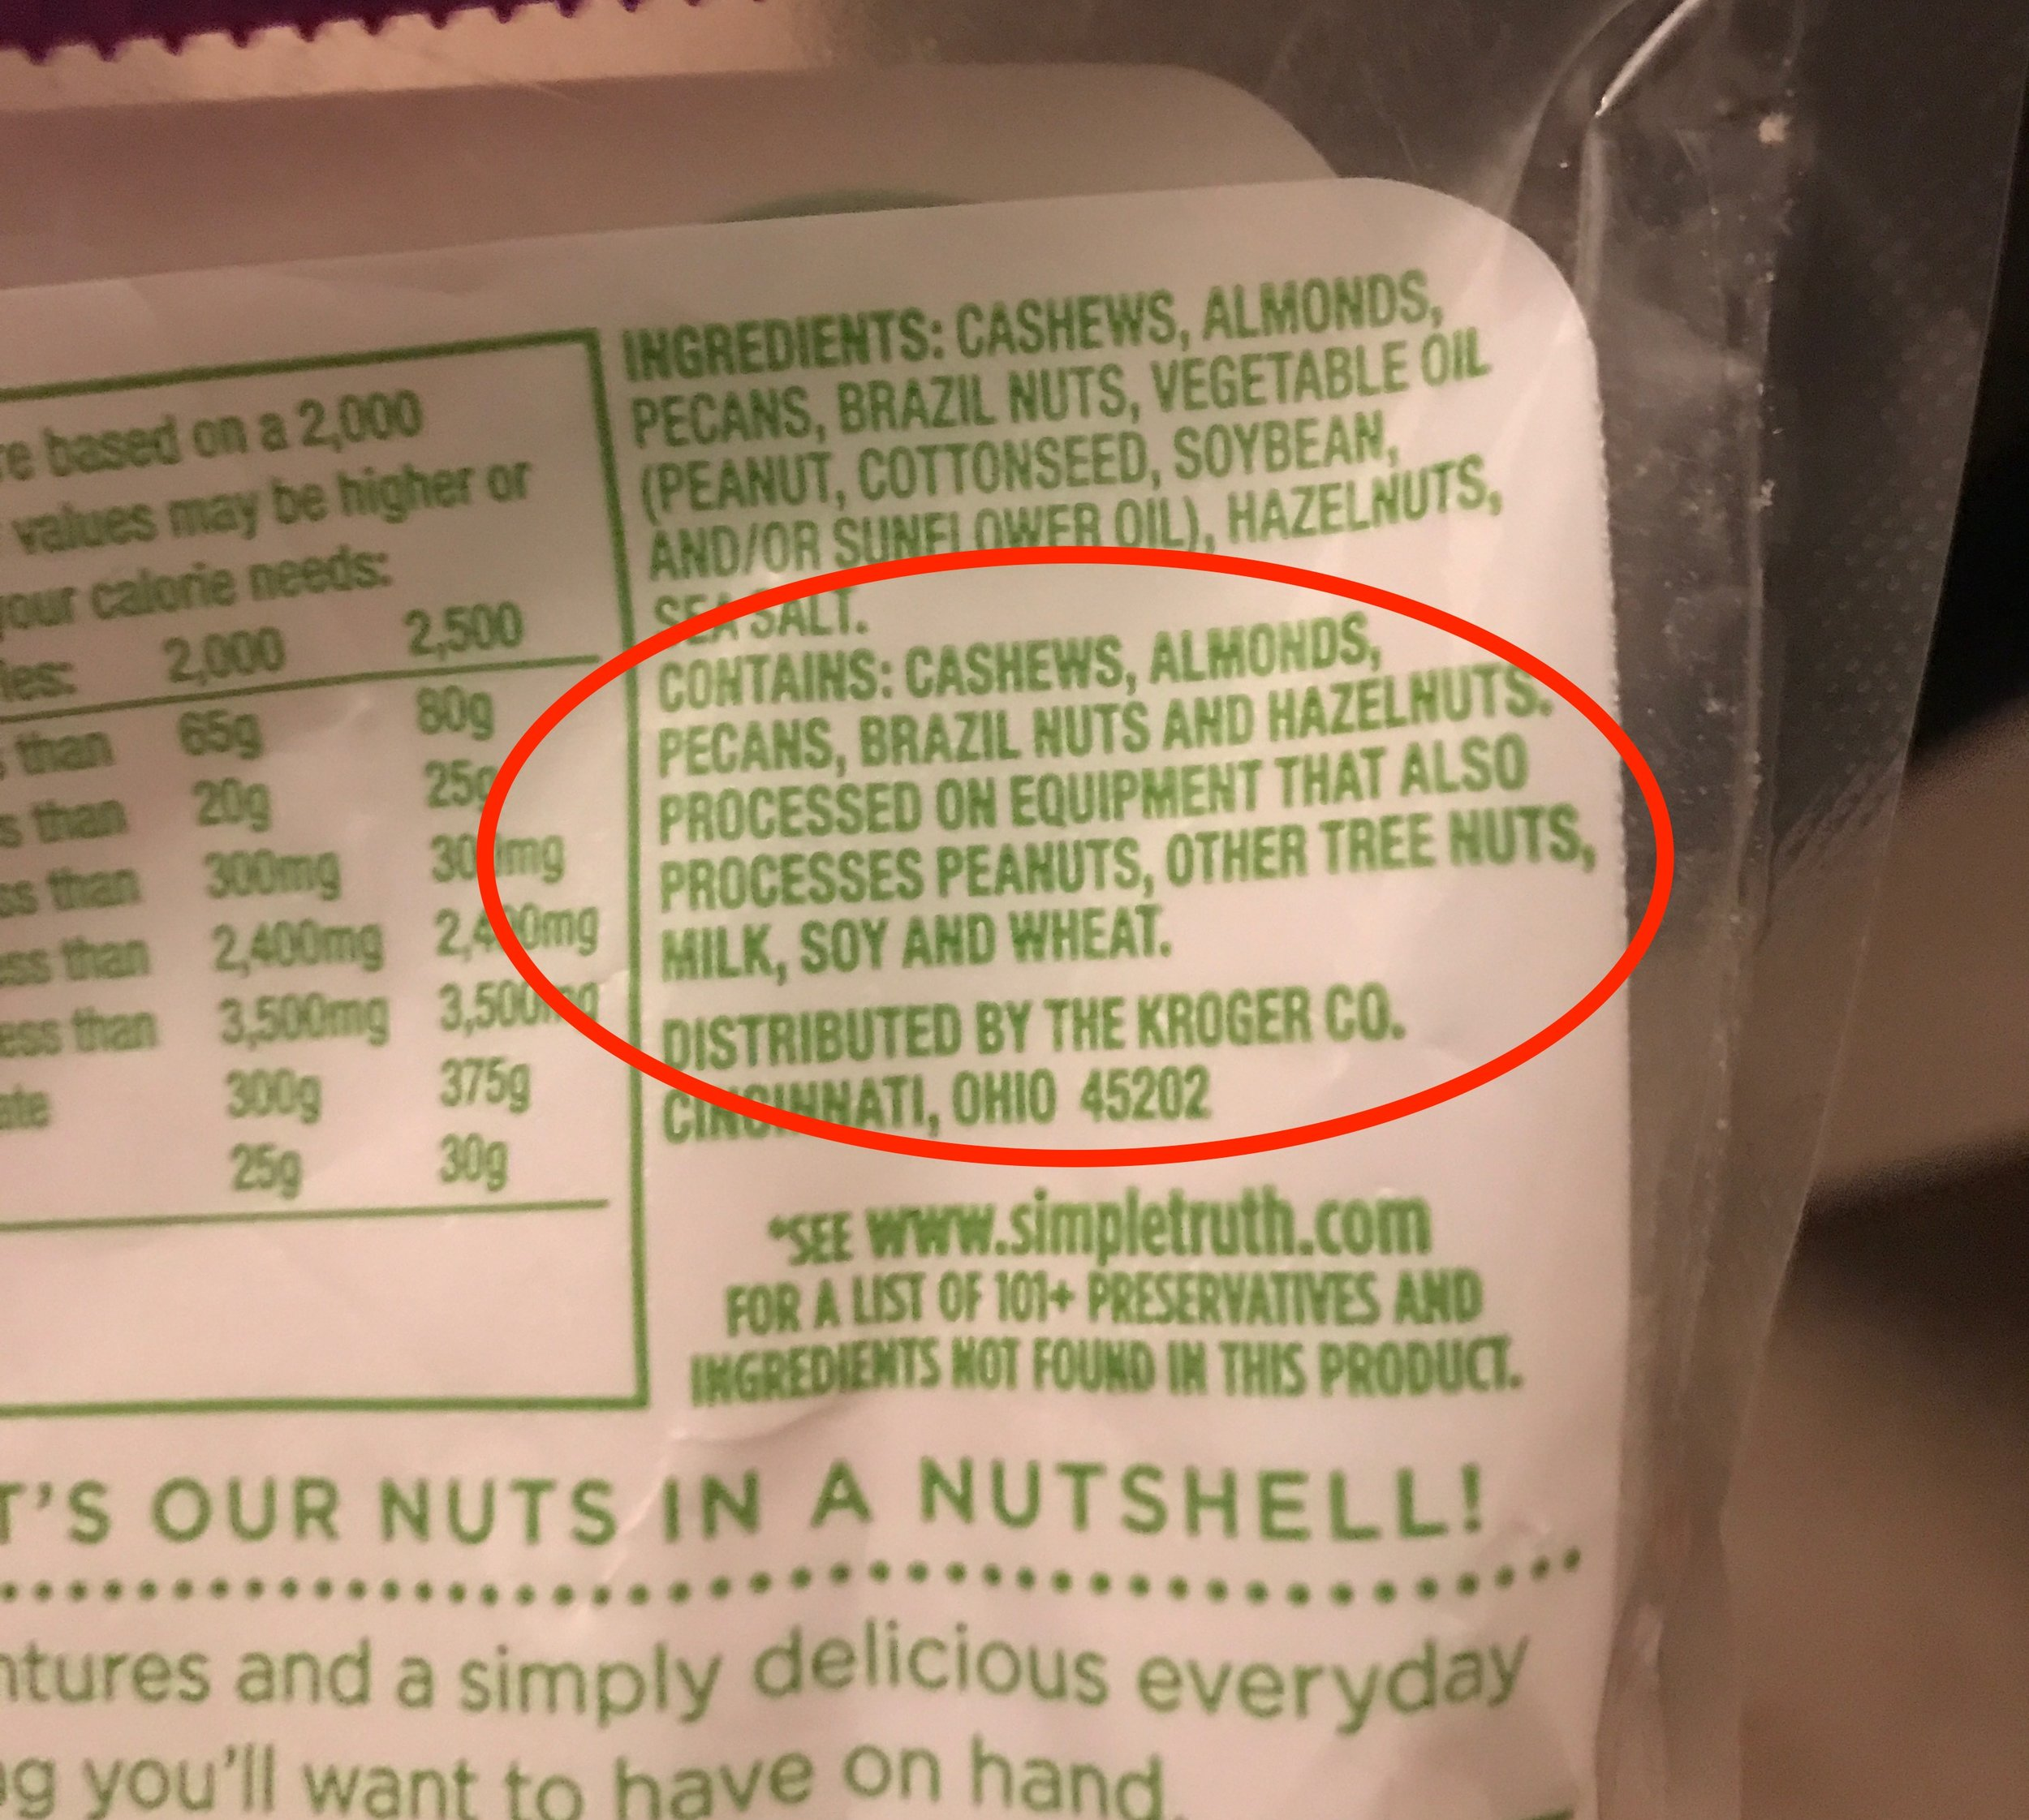 Even though nuts are naturally gluten-free, you still need to check the label. If a food is processed on the same equipment as wheat, it's no bueno due to cross-contamination.